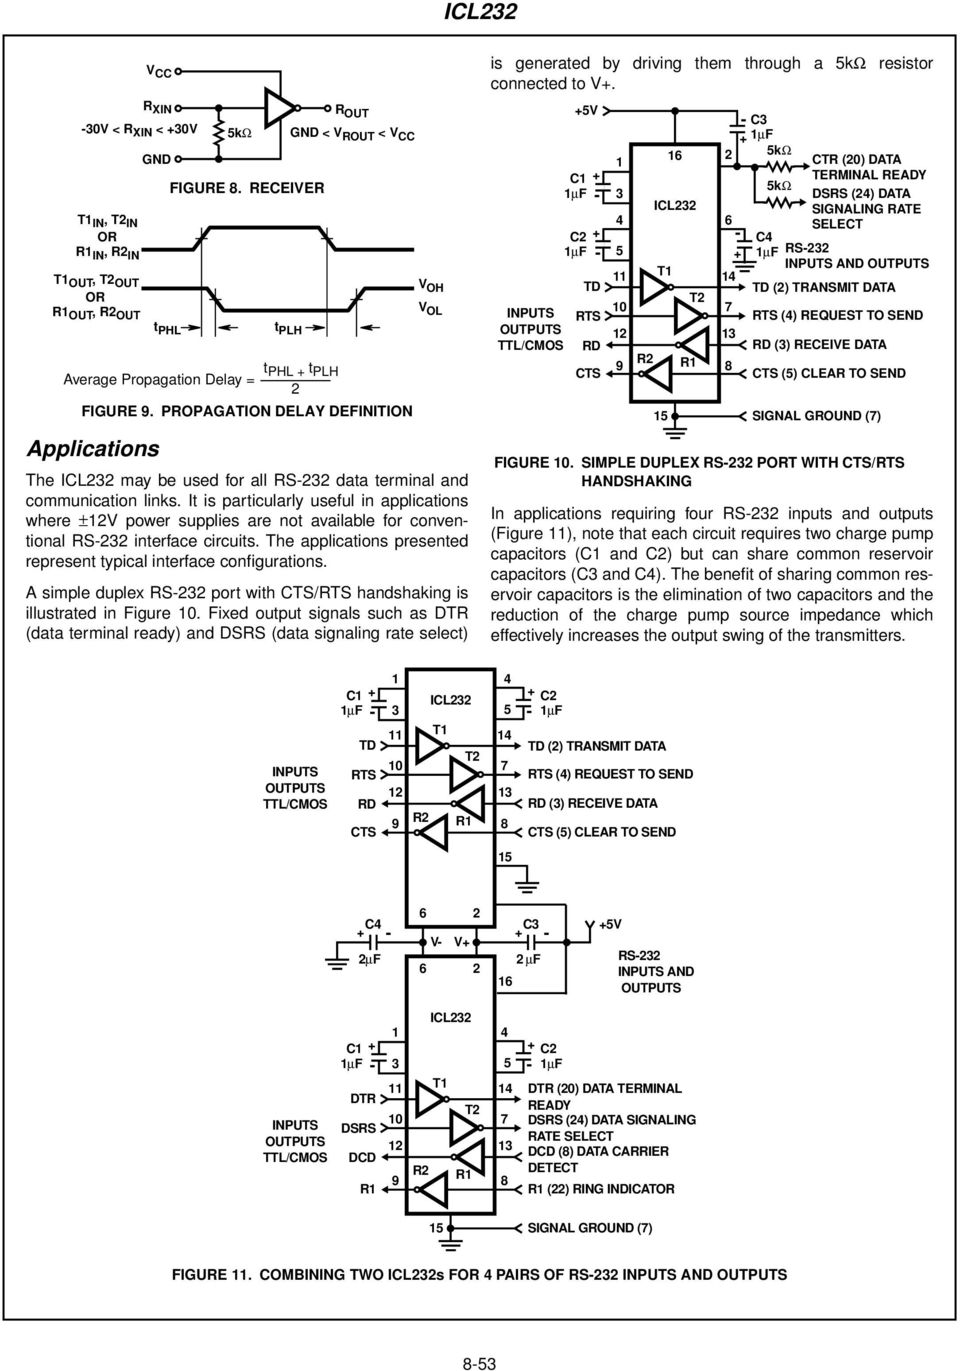 It is particularly useful in applications where ±V power supplies are not available for conventional RS interface circuits. The applications presented represent typical interface configurations.